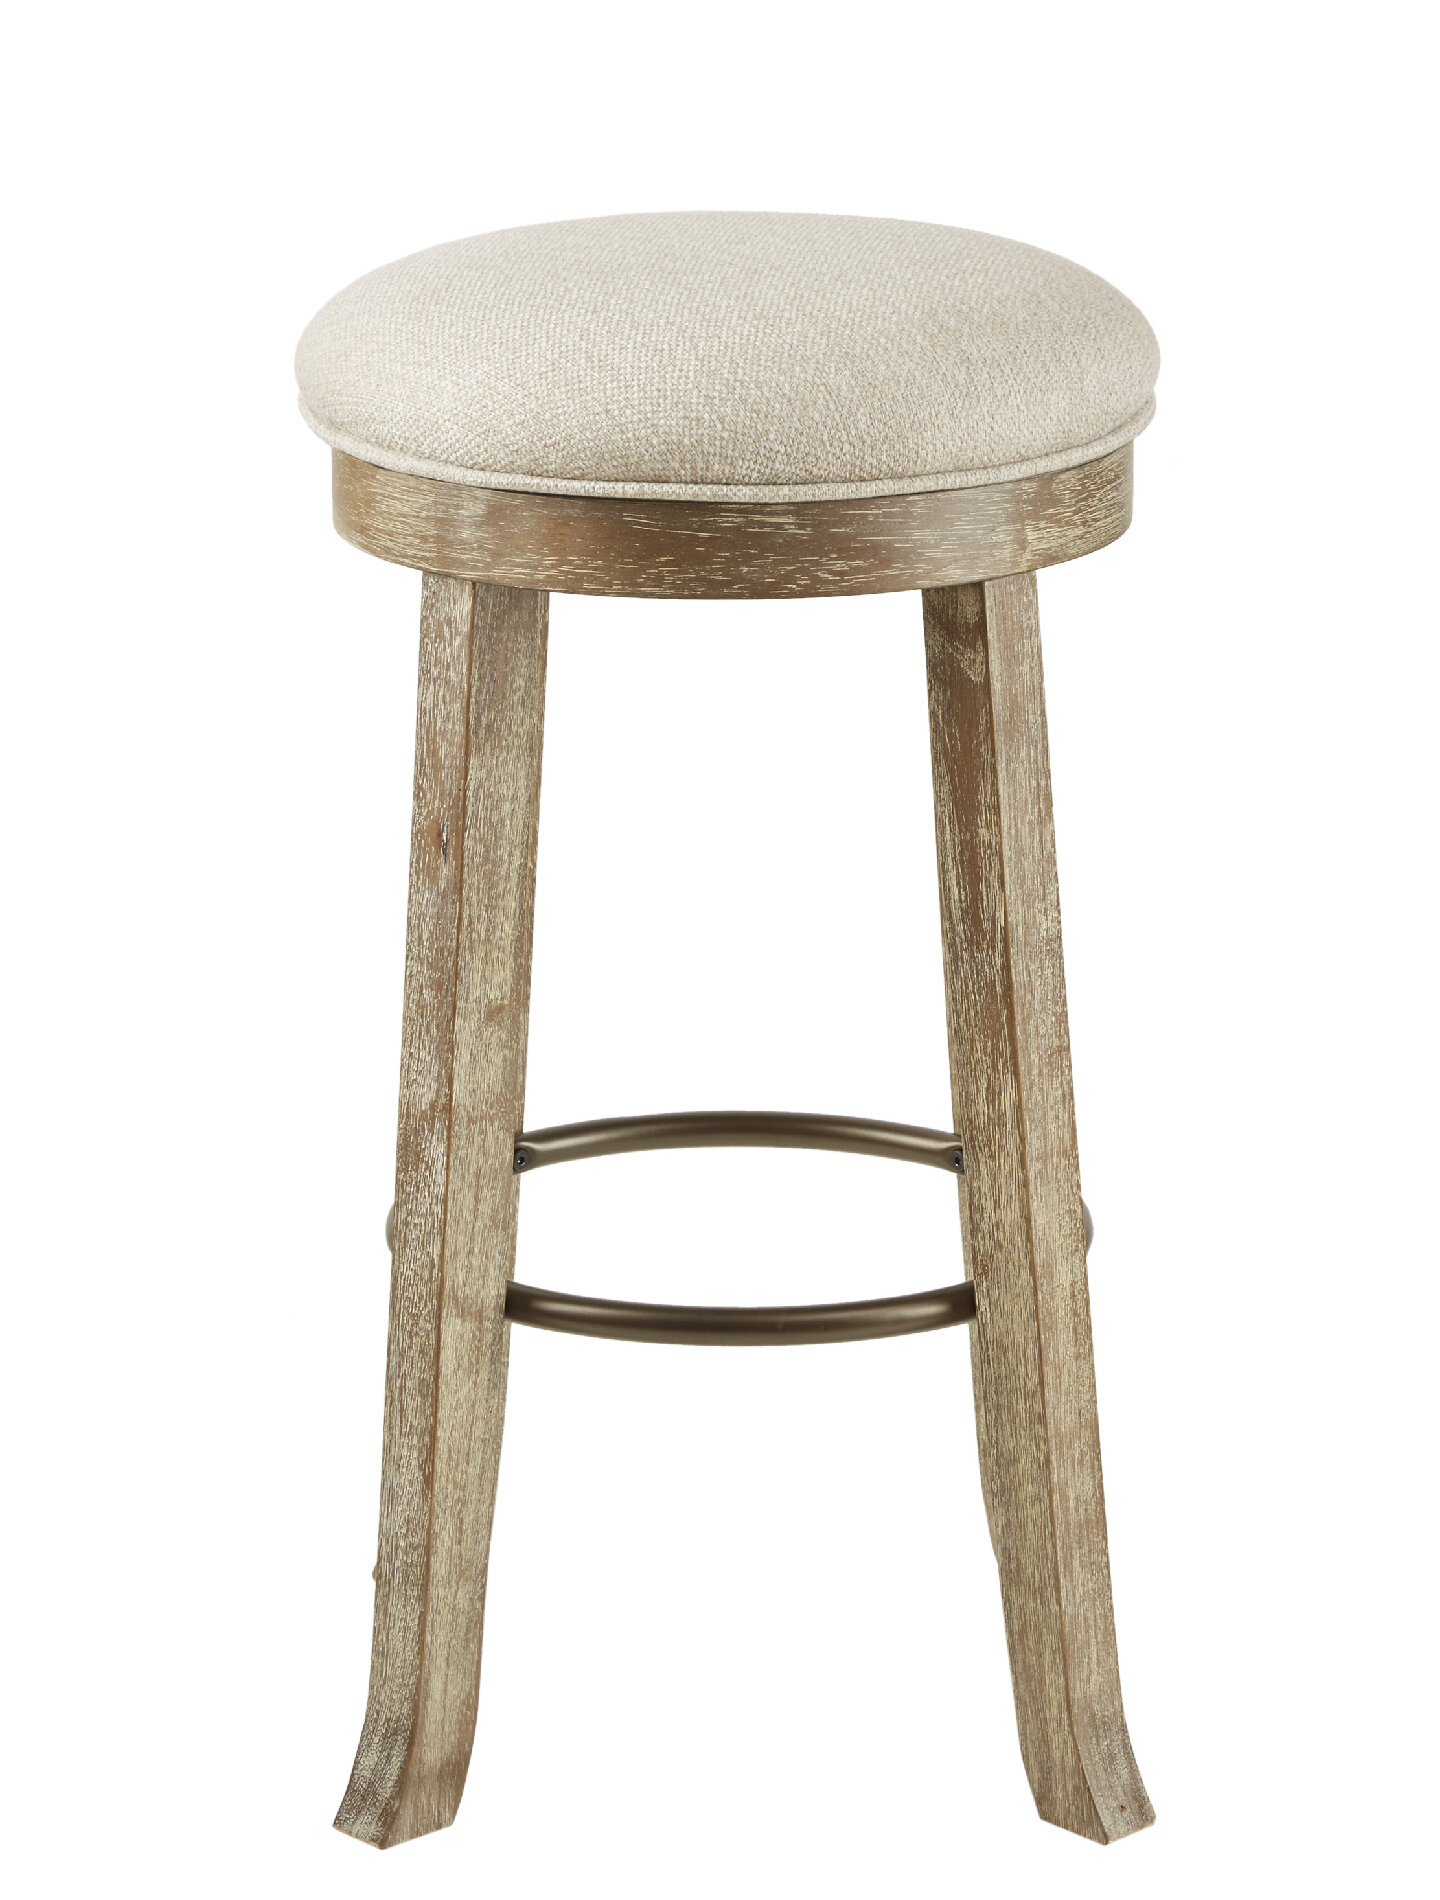 Madiun Bar Counter Swivel Stool